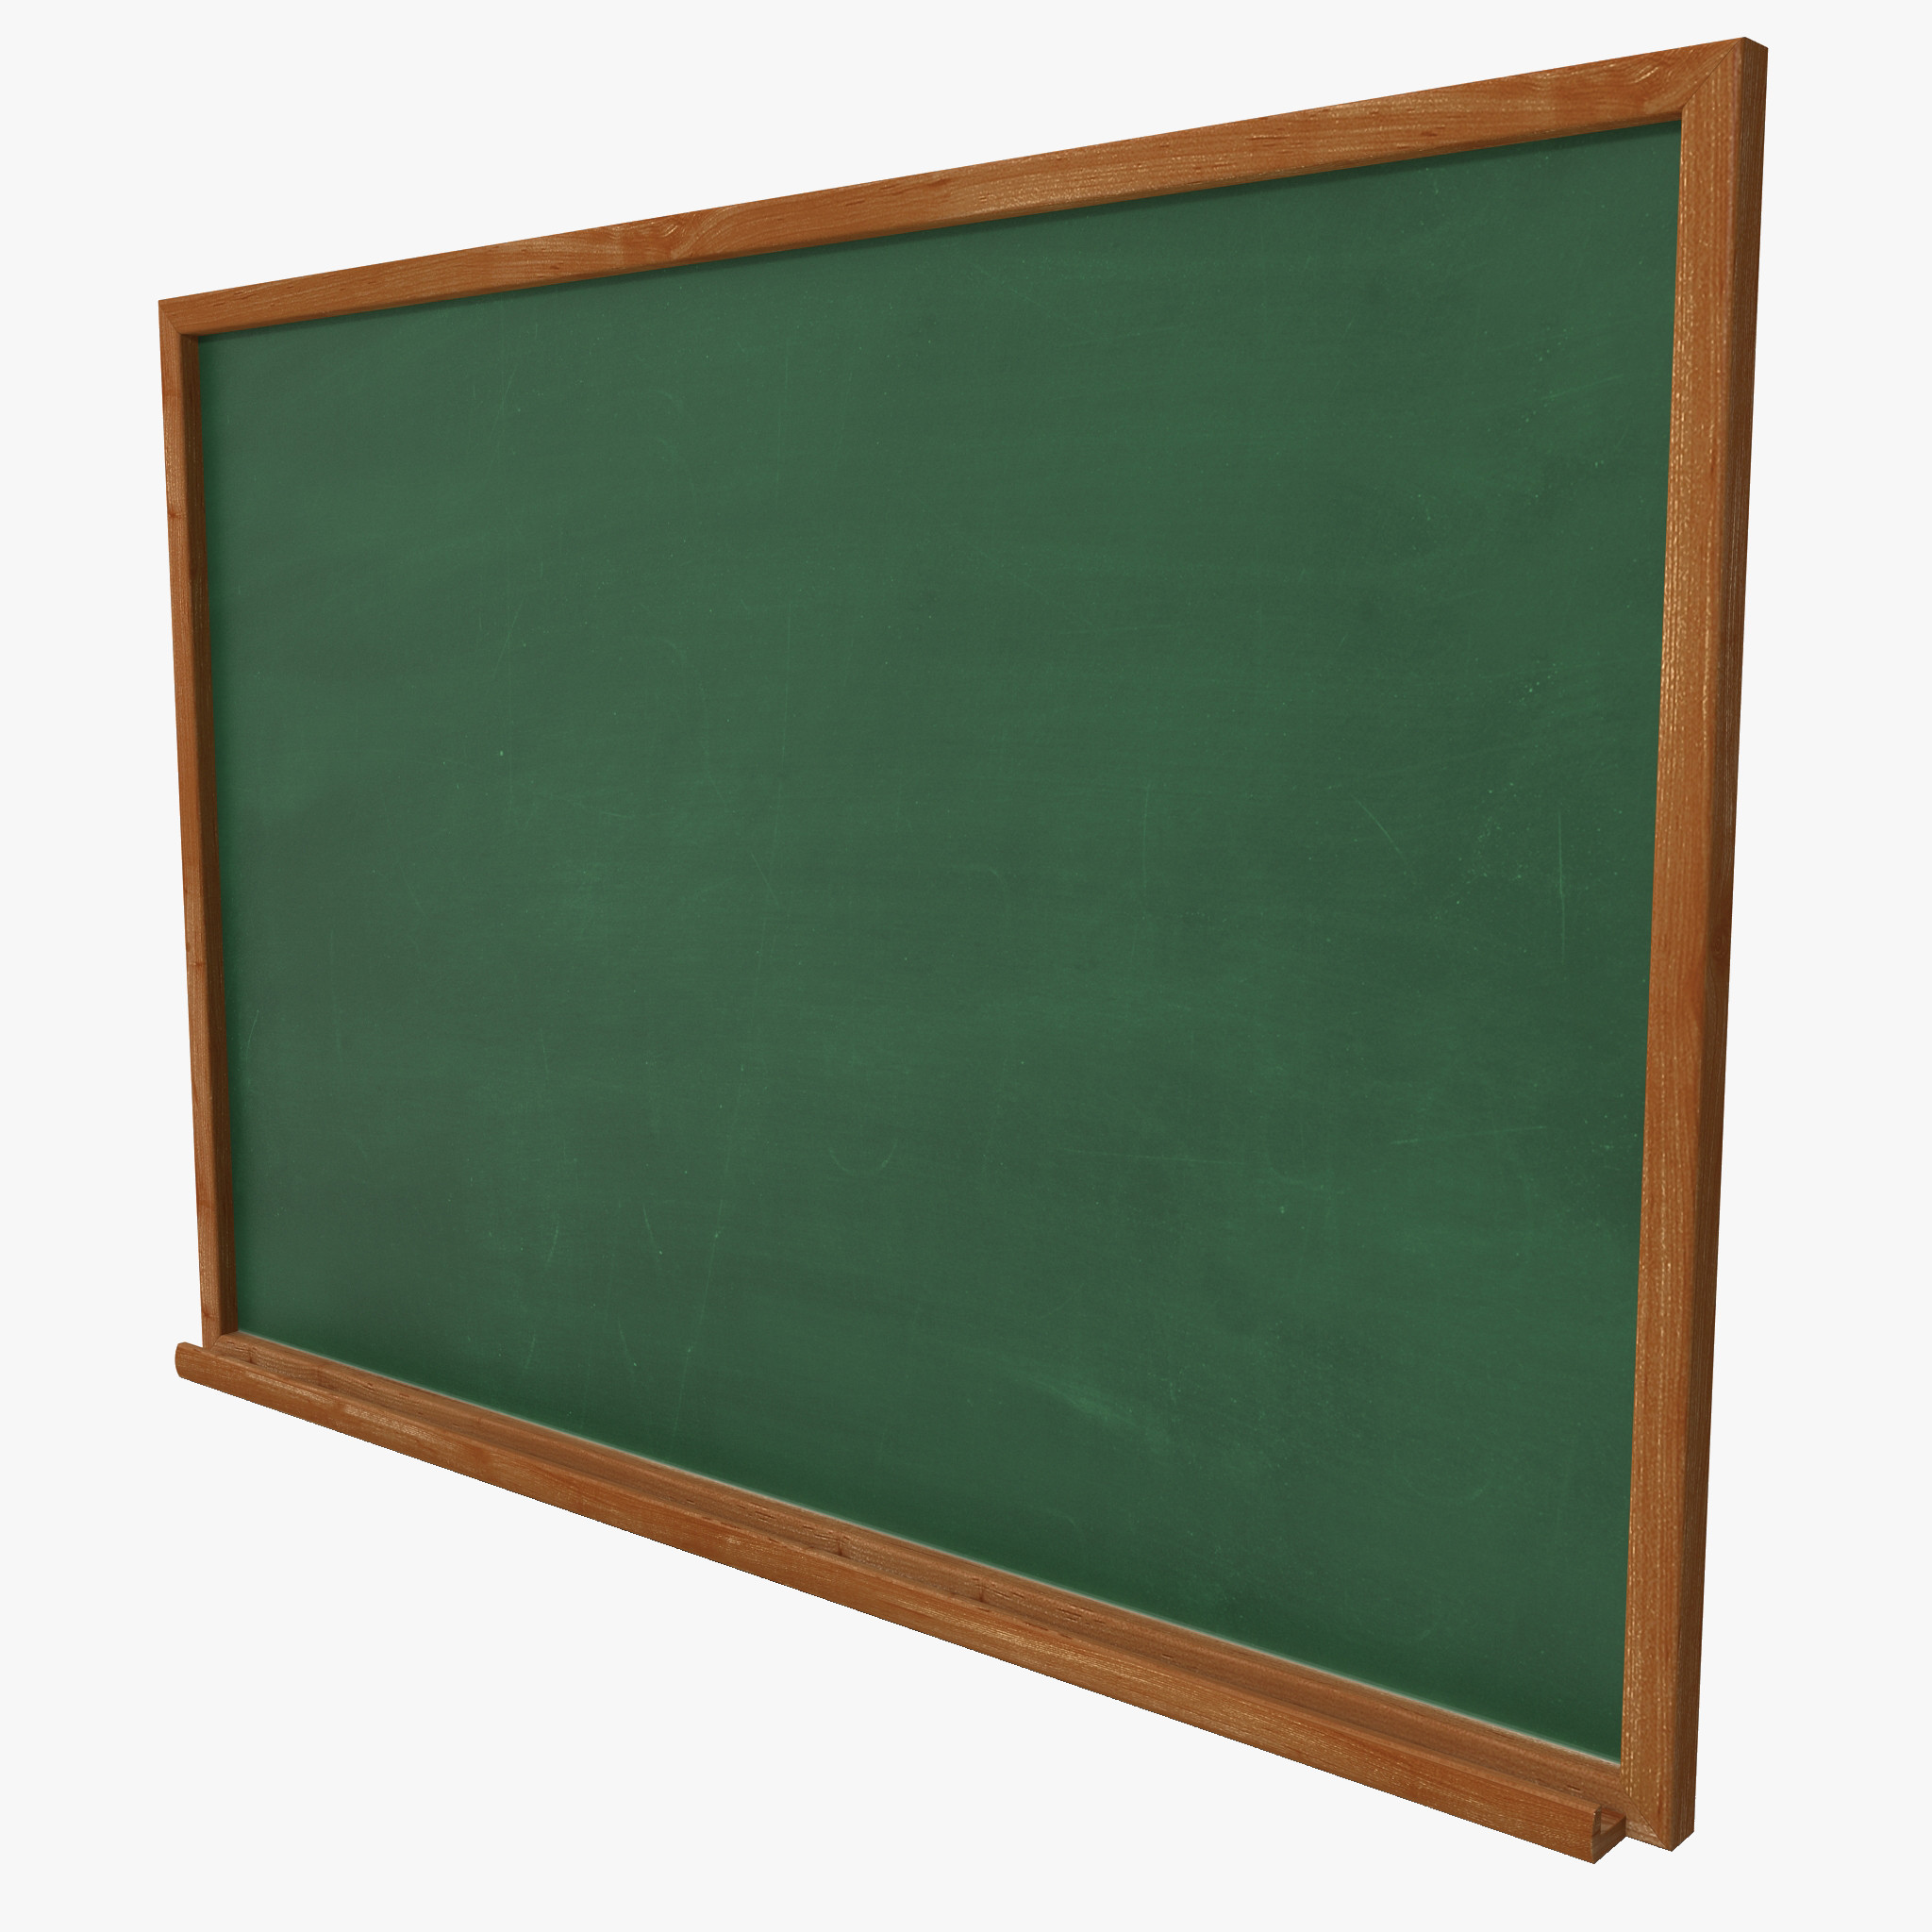 green chalkboards in pune maharashtra suppliers